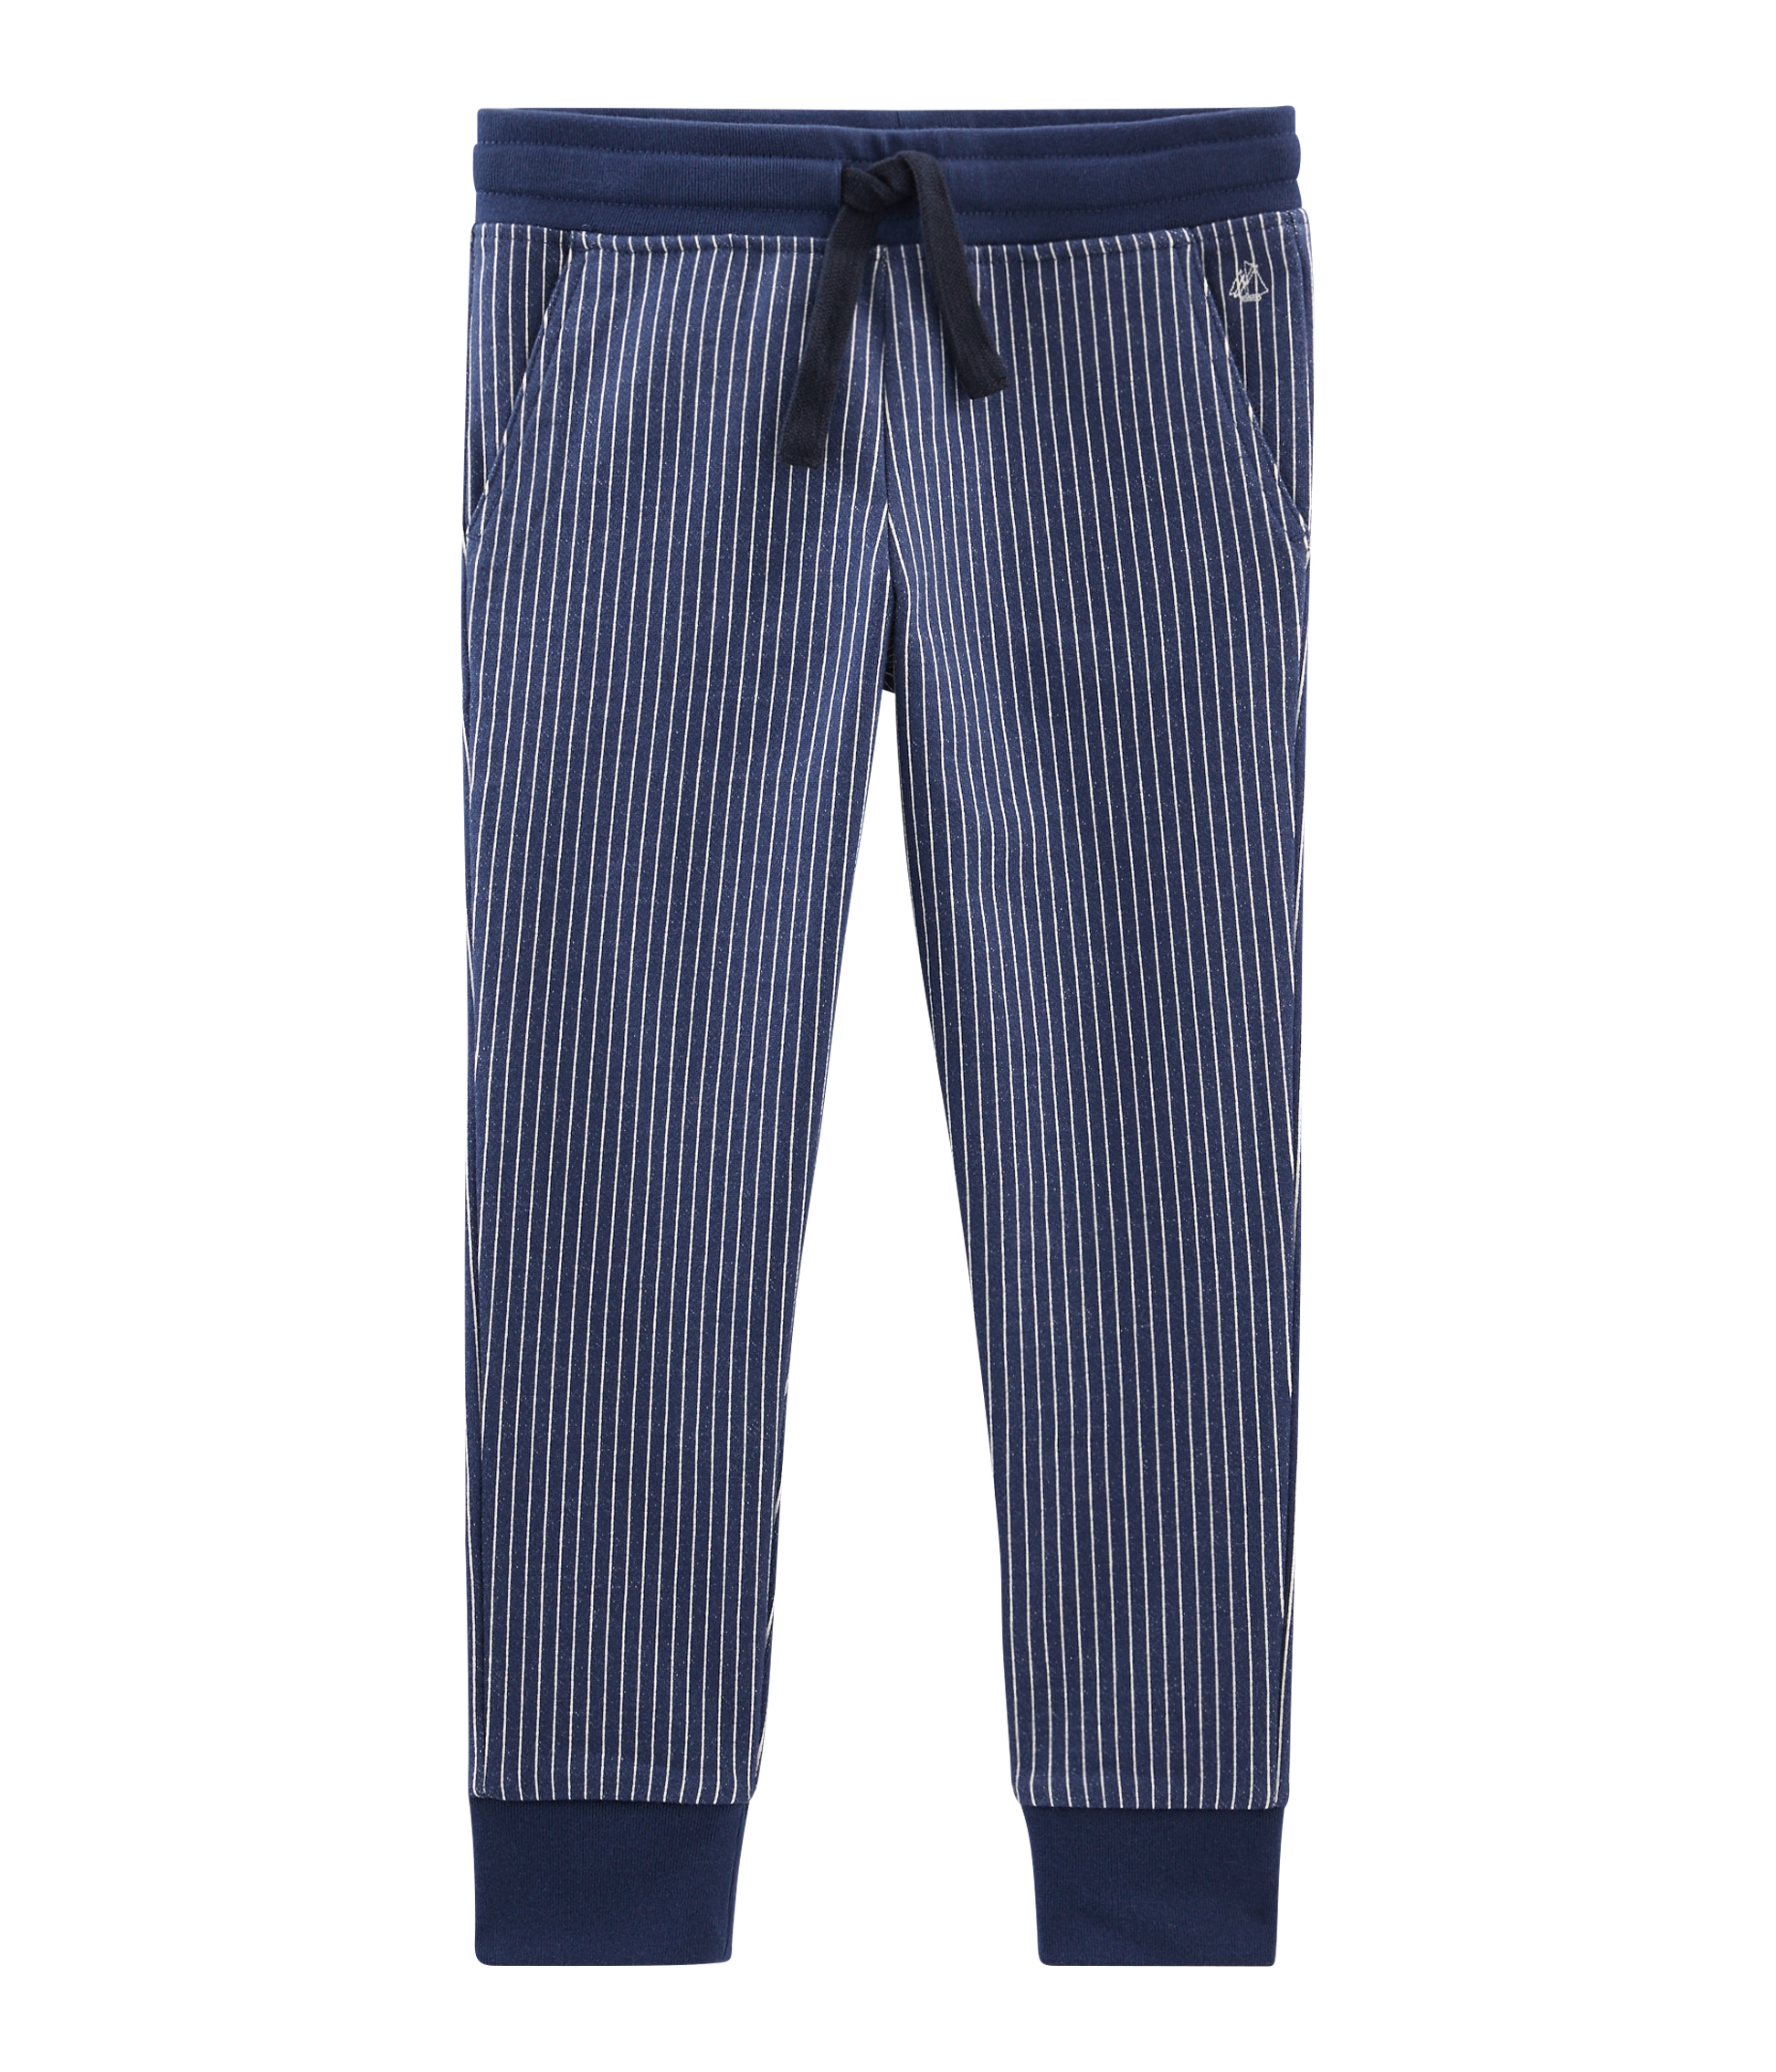 Boys' Knit Trousers